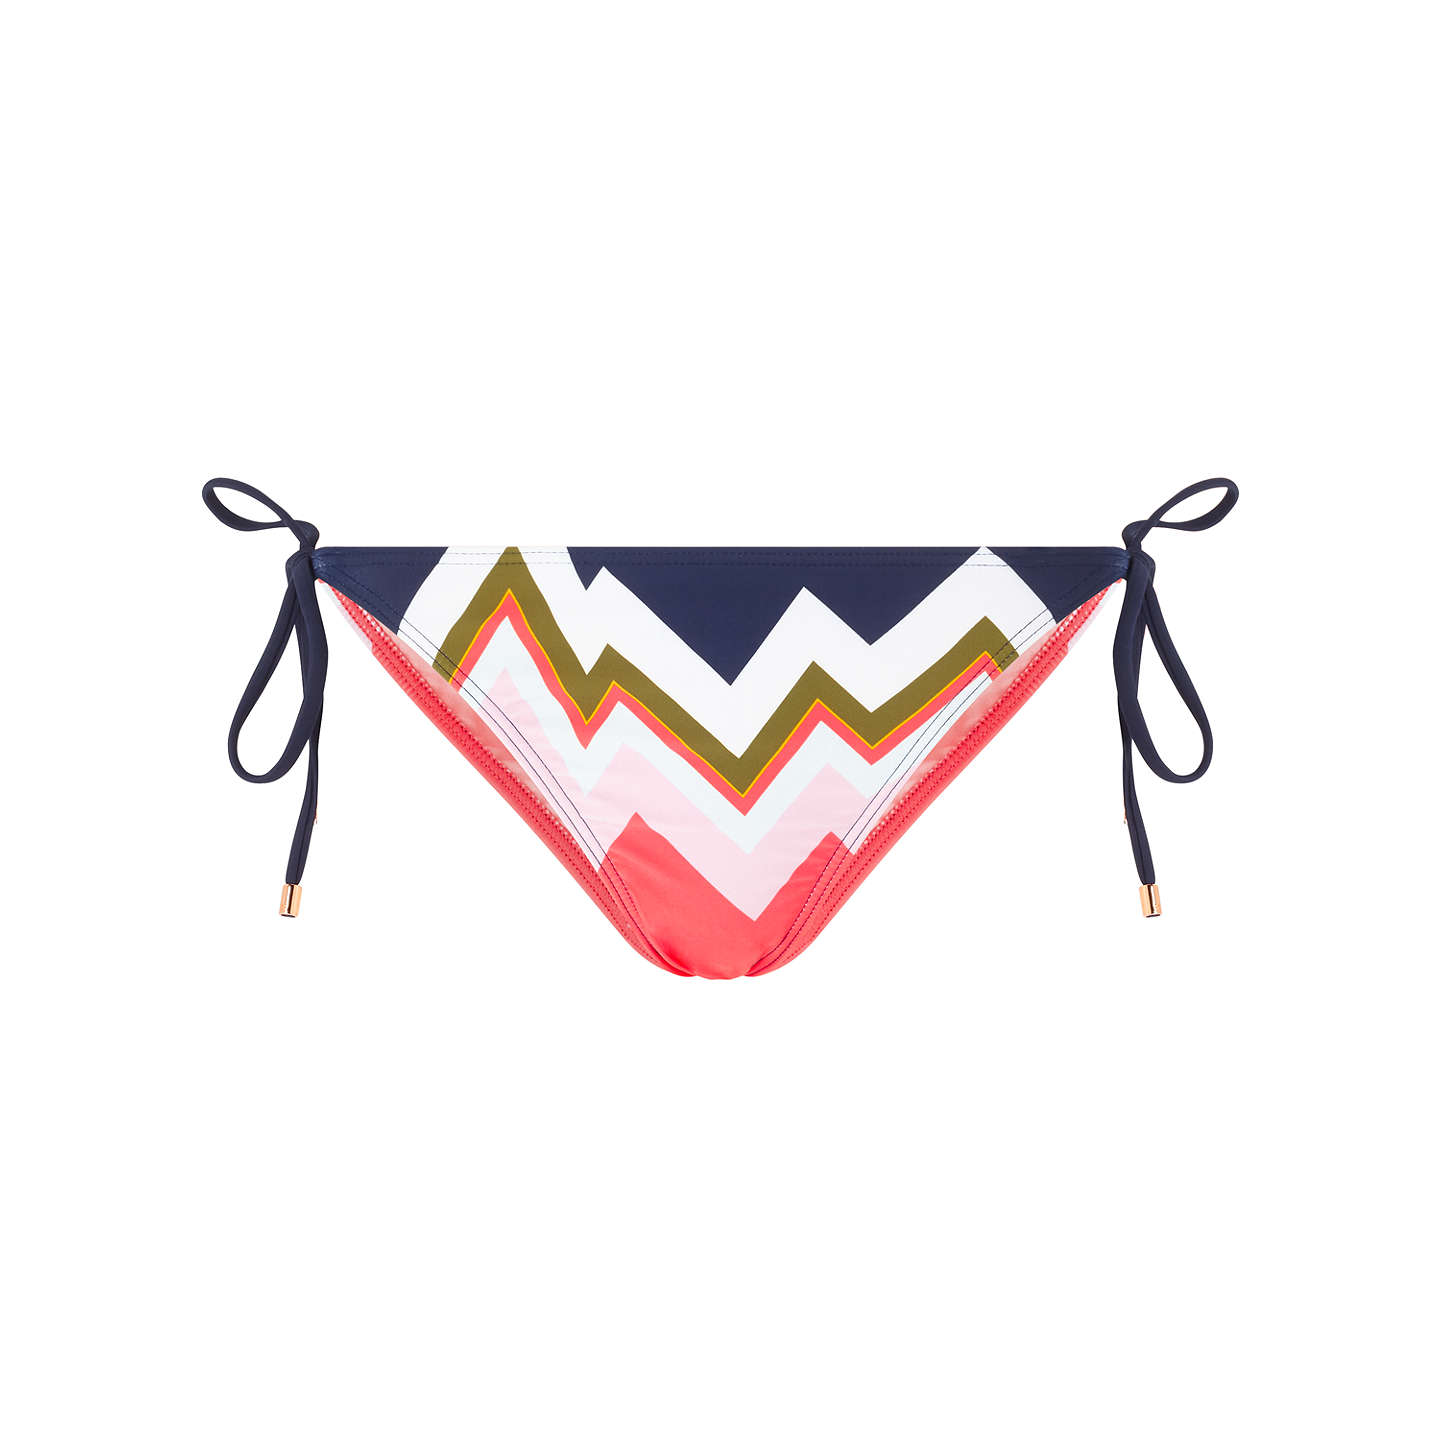 BuyTed Baker Livviy Mississippi Bikini Bottoms, Multi, 1 Online at johnlewis.com